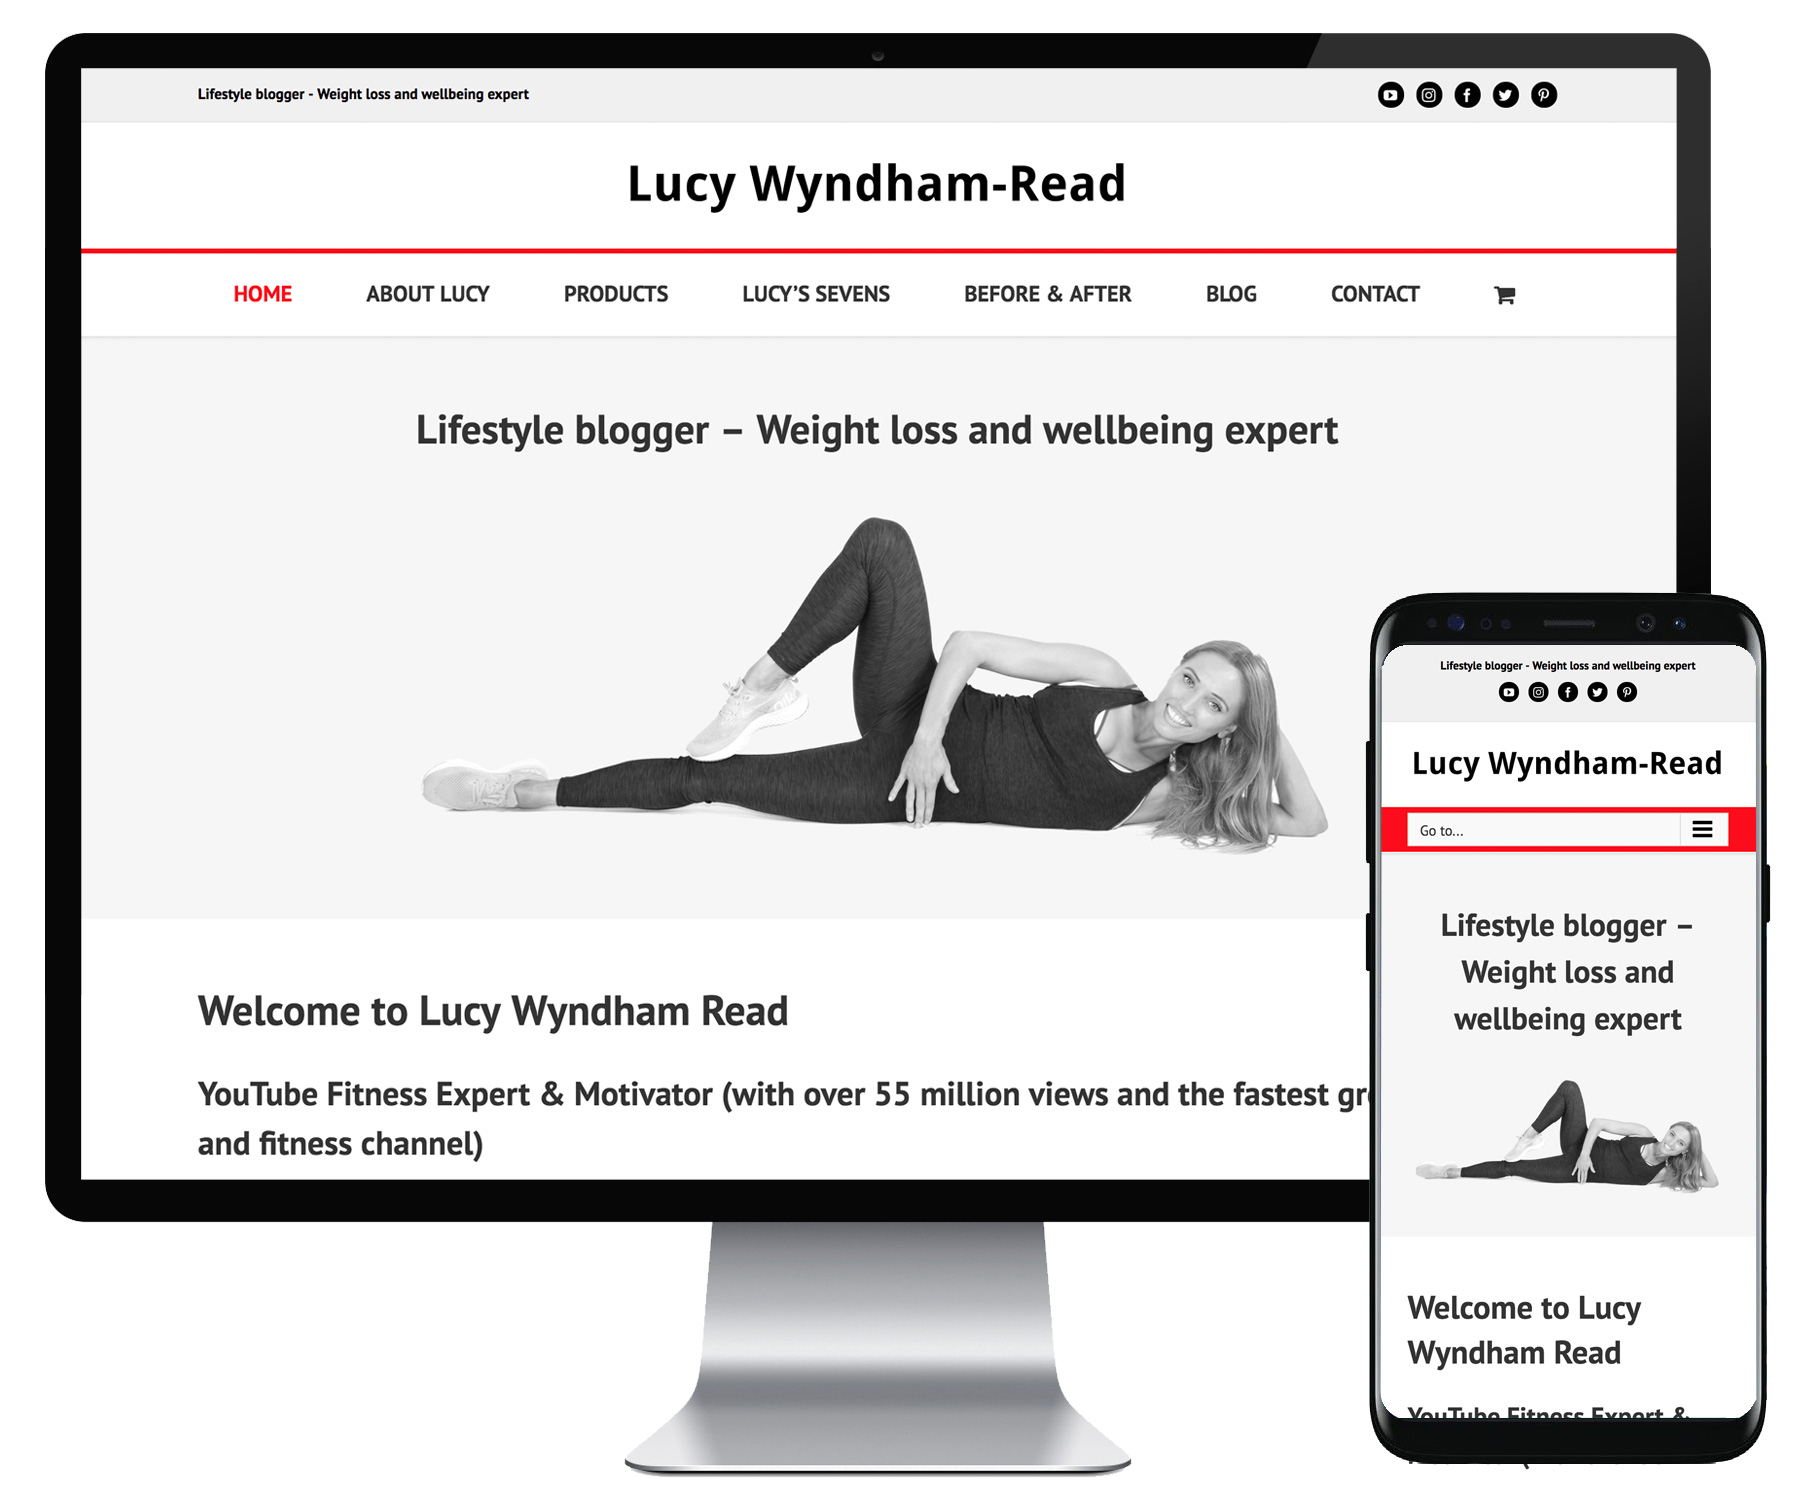 Lucy Wyndham Read website